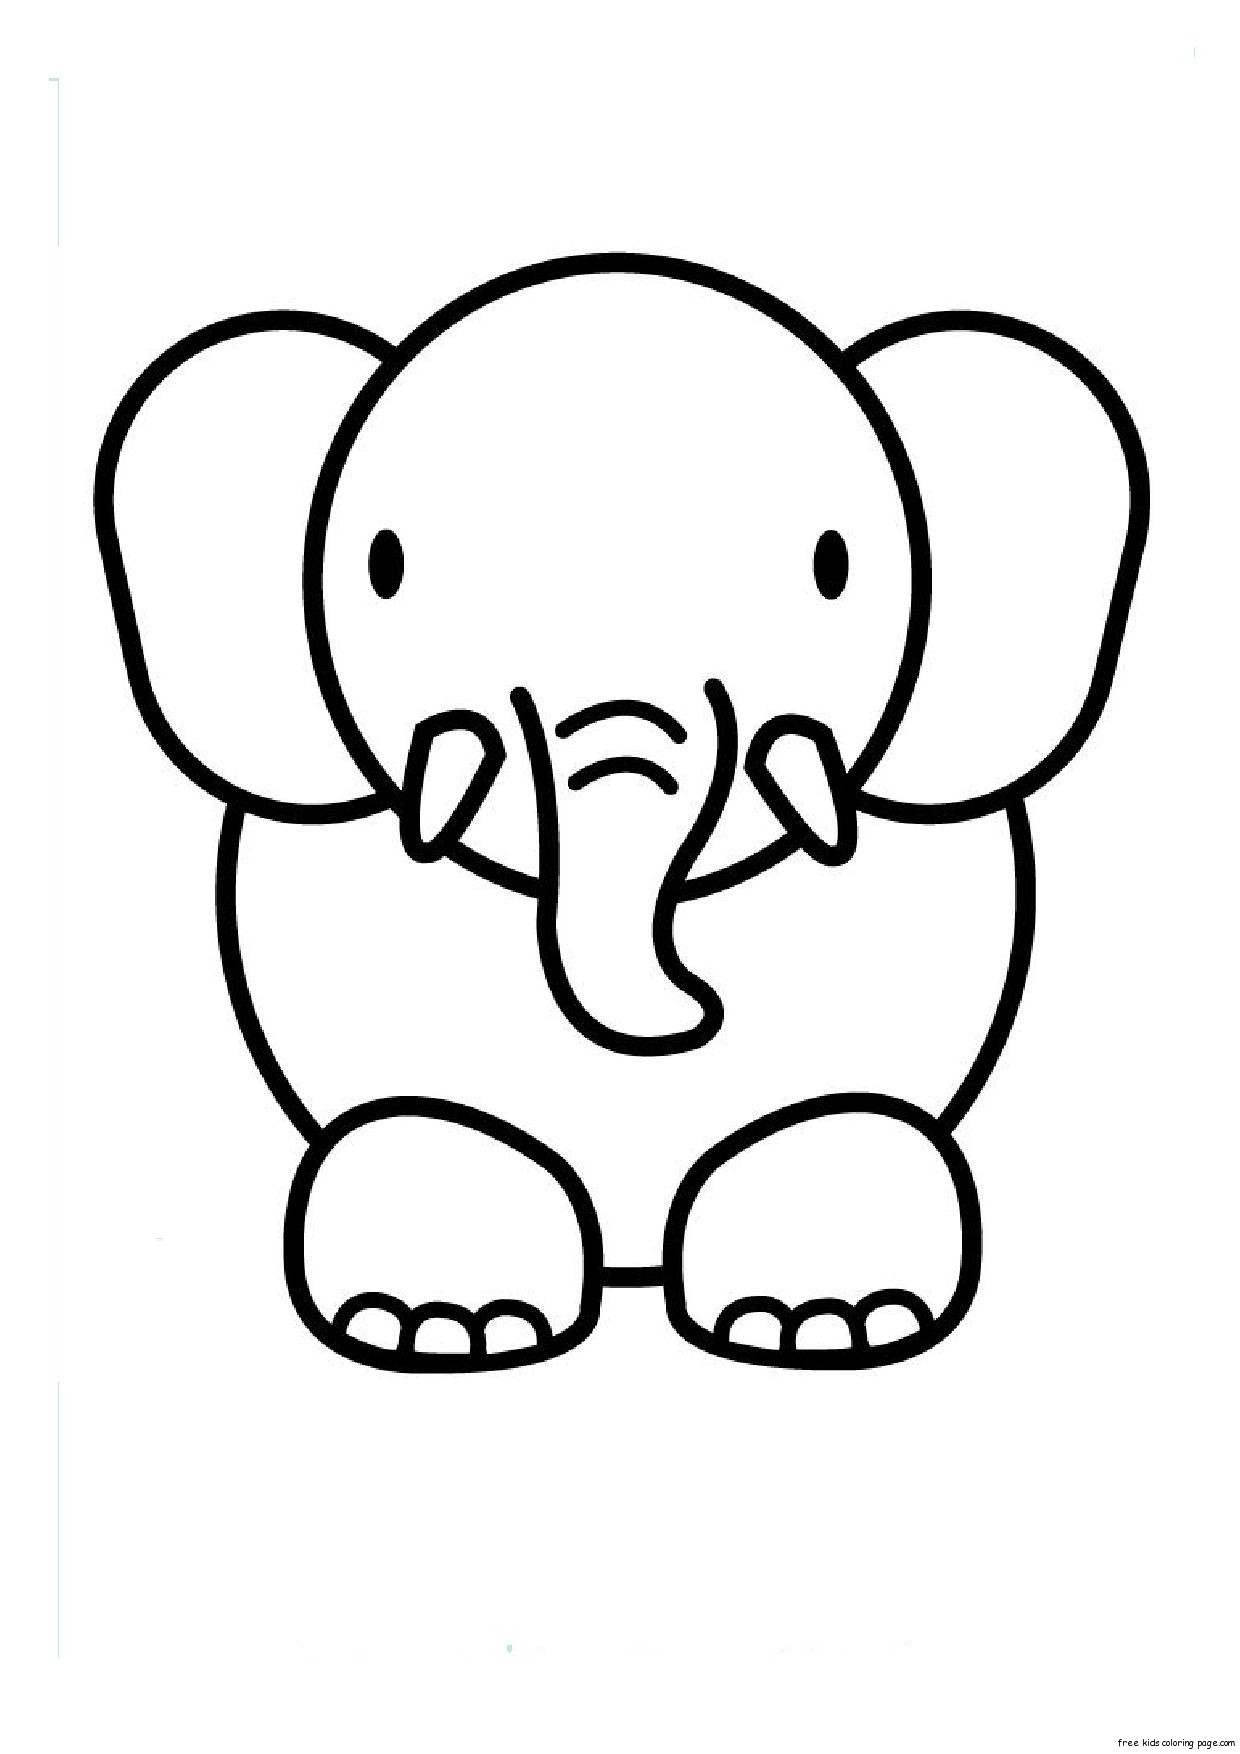 Simple Animal Drawing at GetDrawings.com | Free for personal use ...